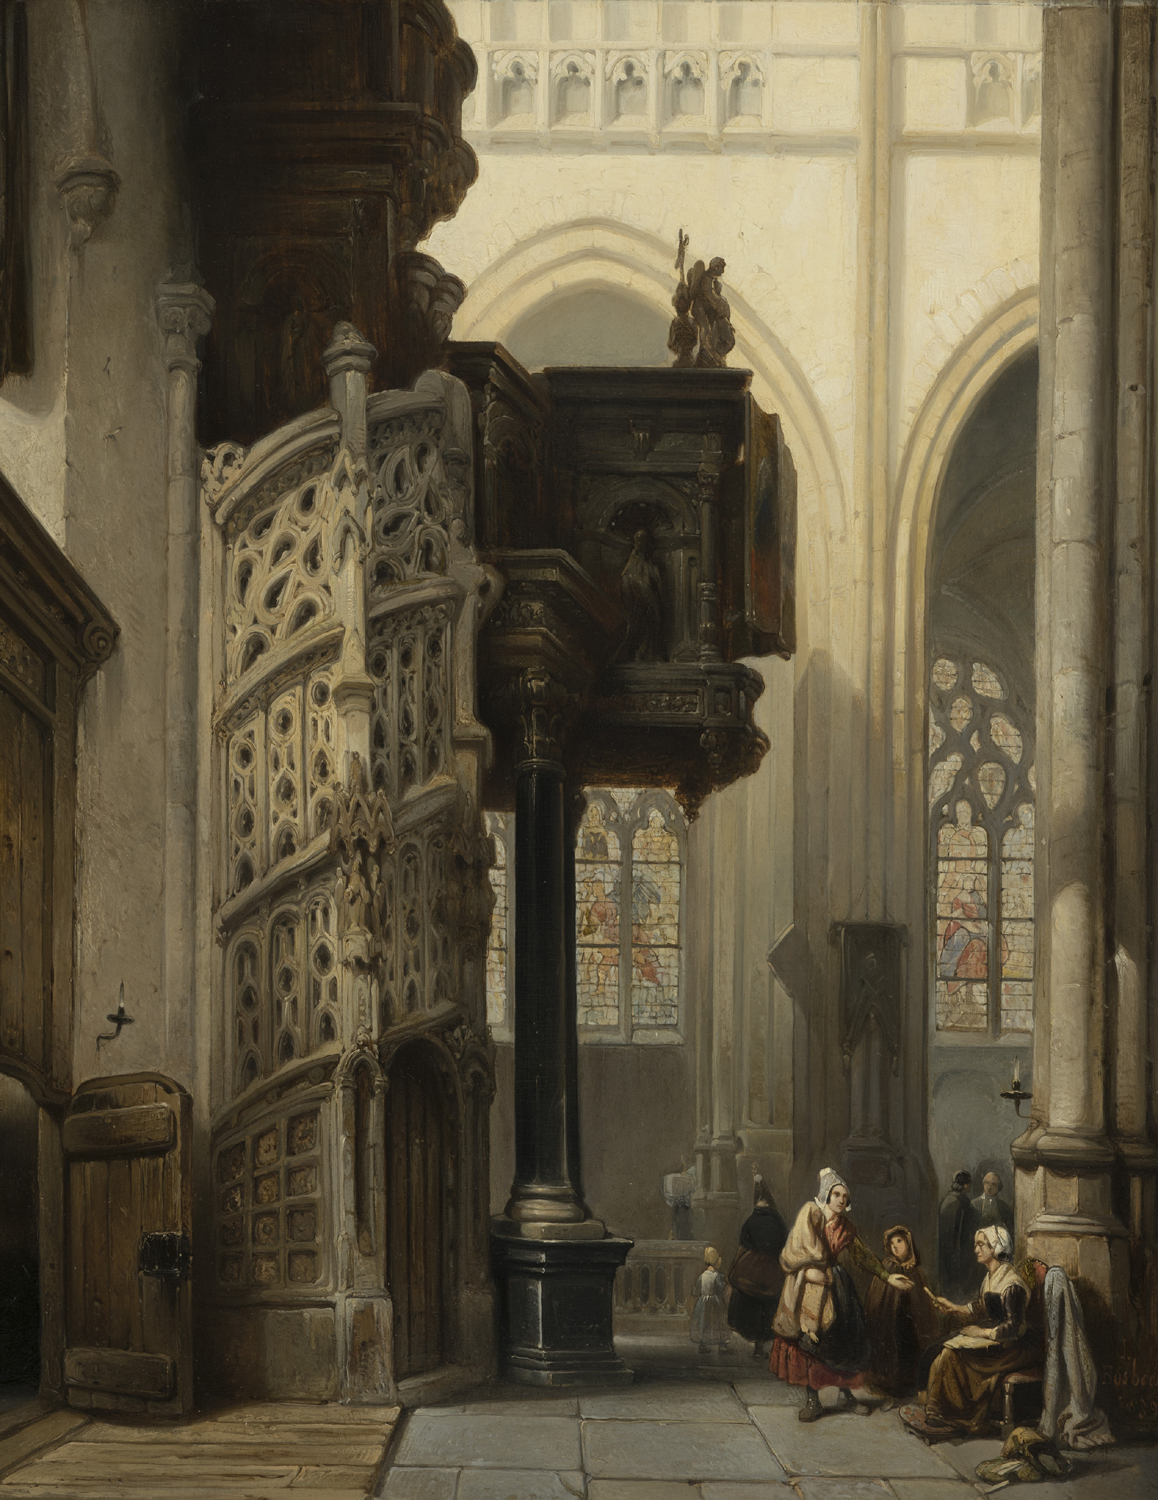 Johannes Bosboom | Interior of the St Maclou Church in Rouen, France | Kunsthandel Bies | Bies Gallery